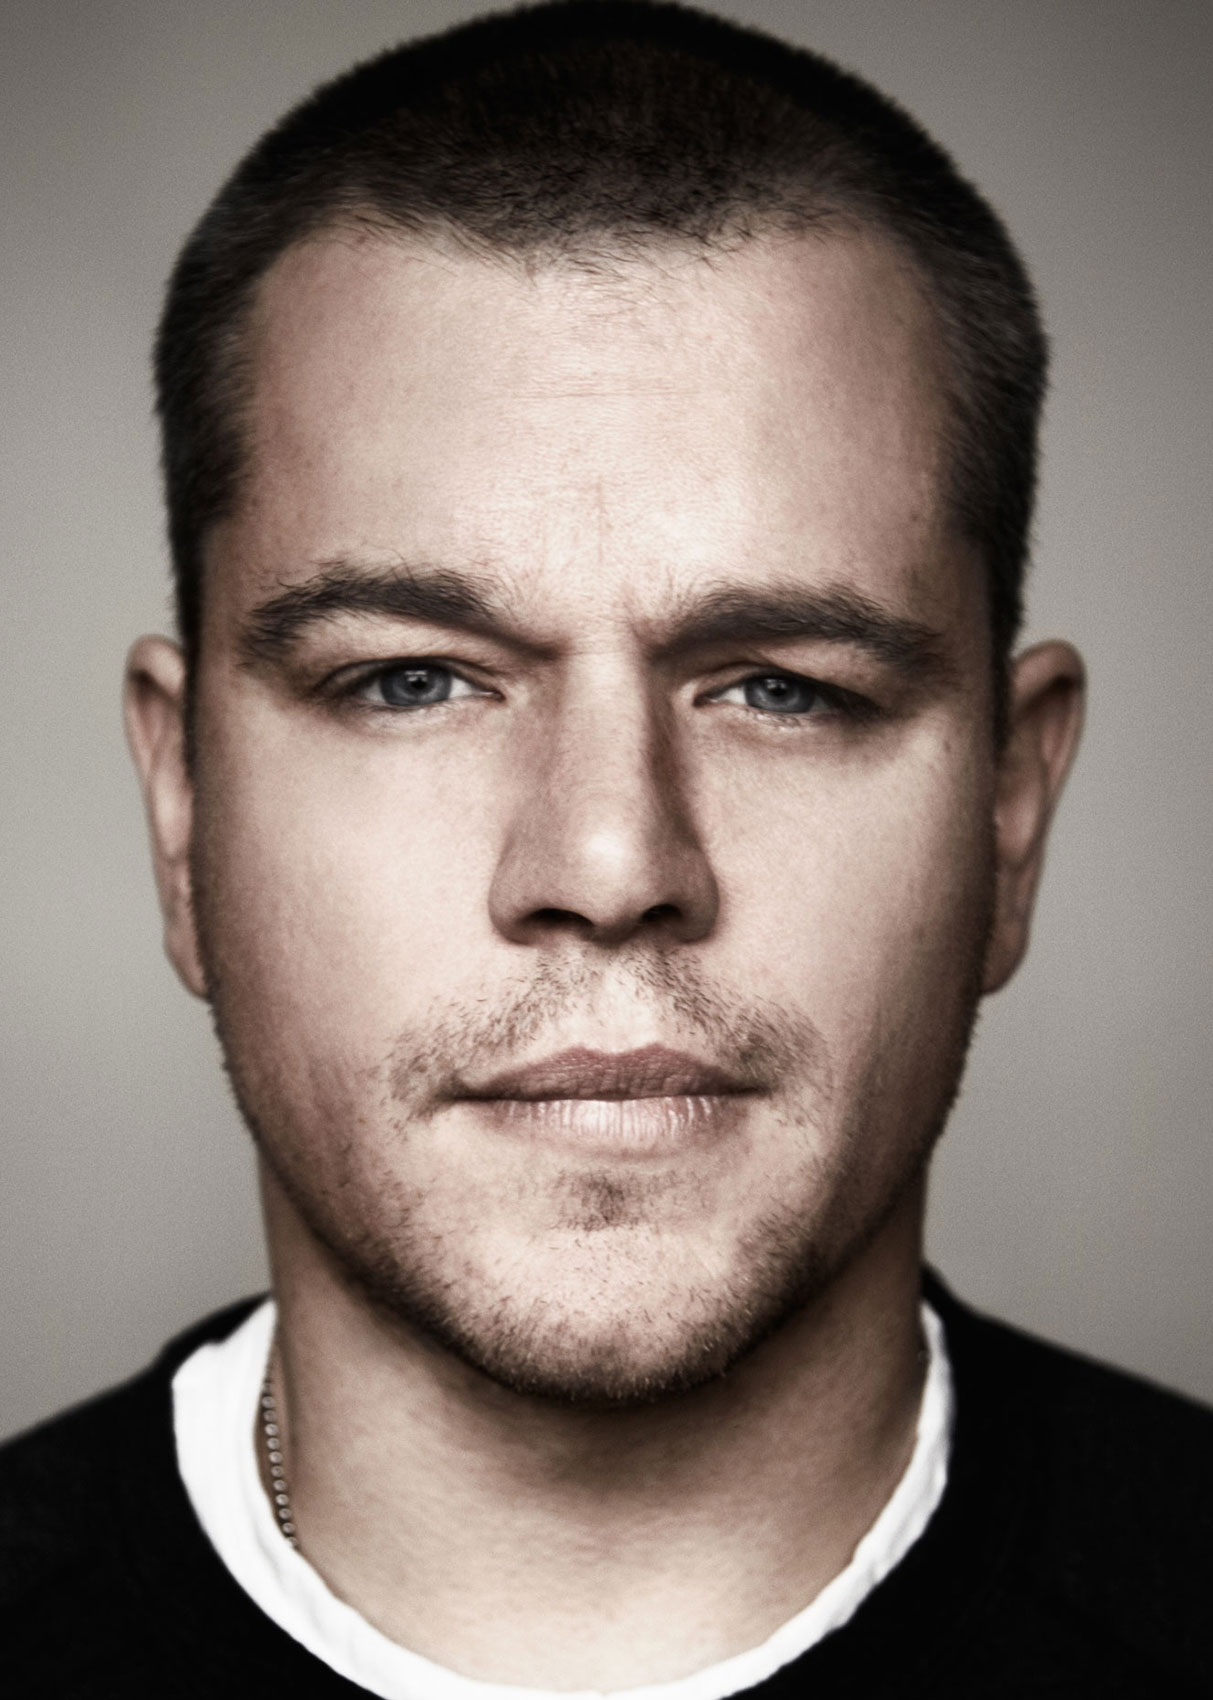 SAGF_Matt_Damon_006_v2